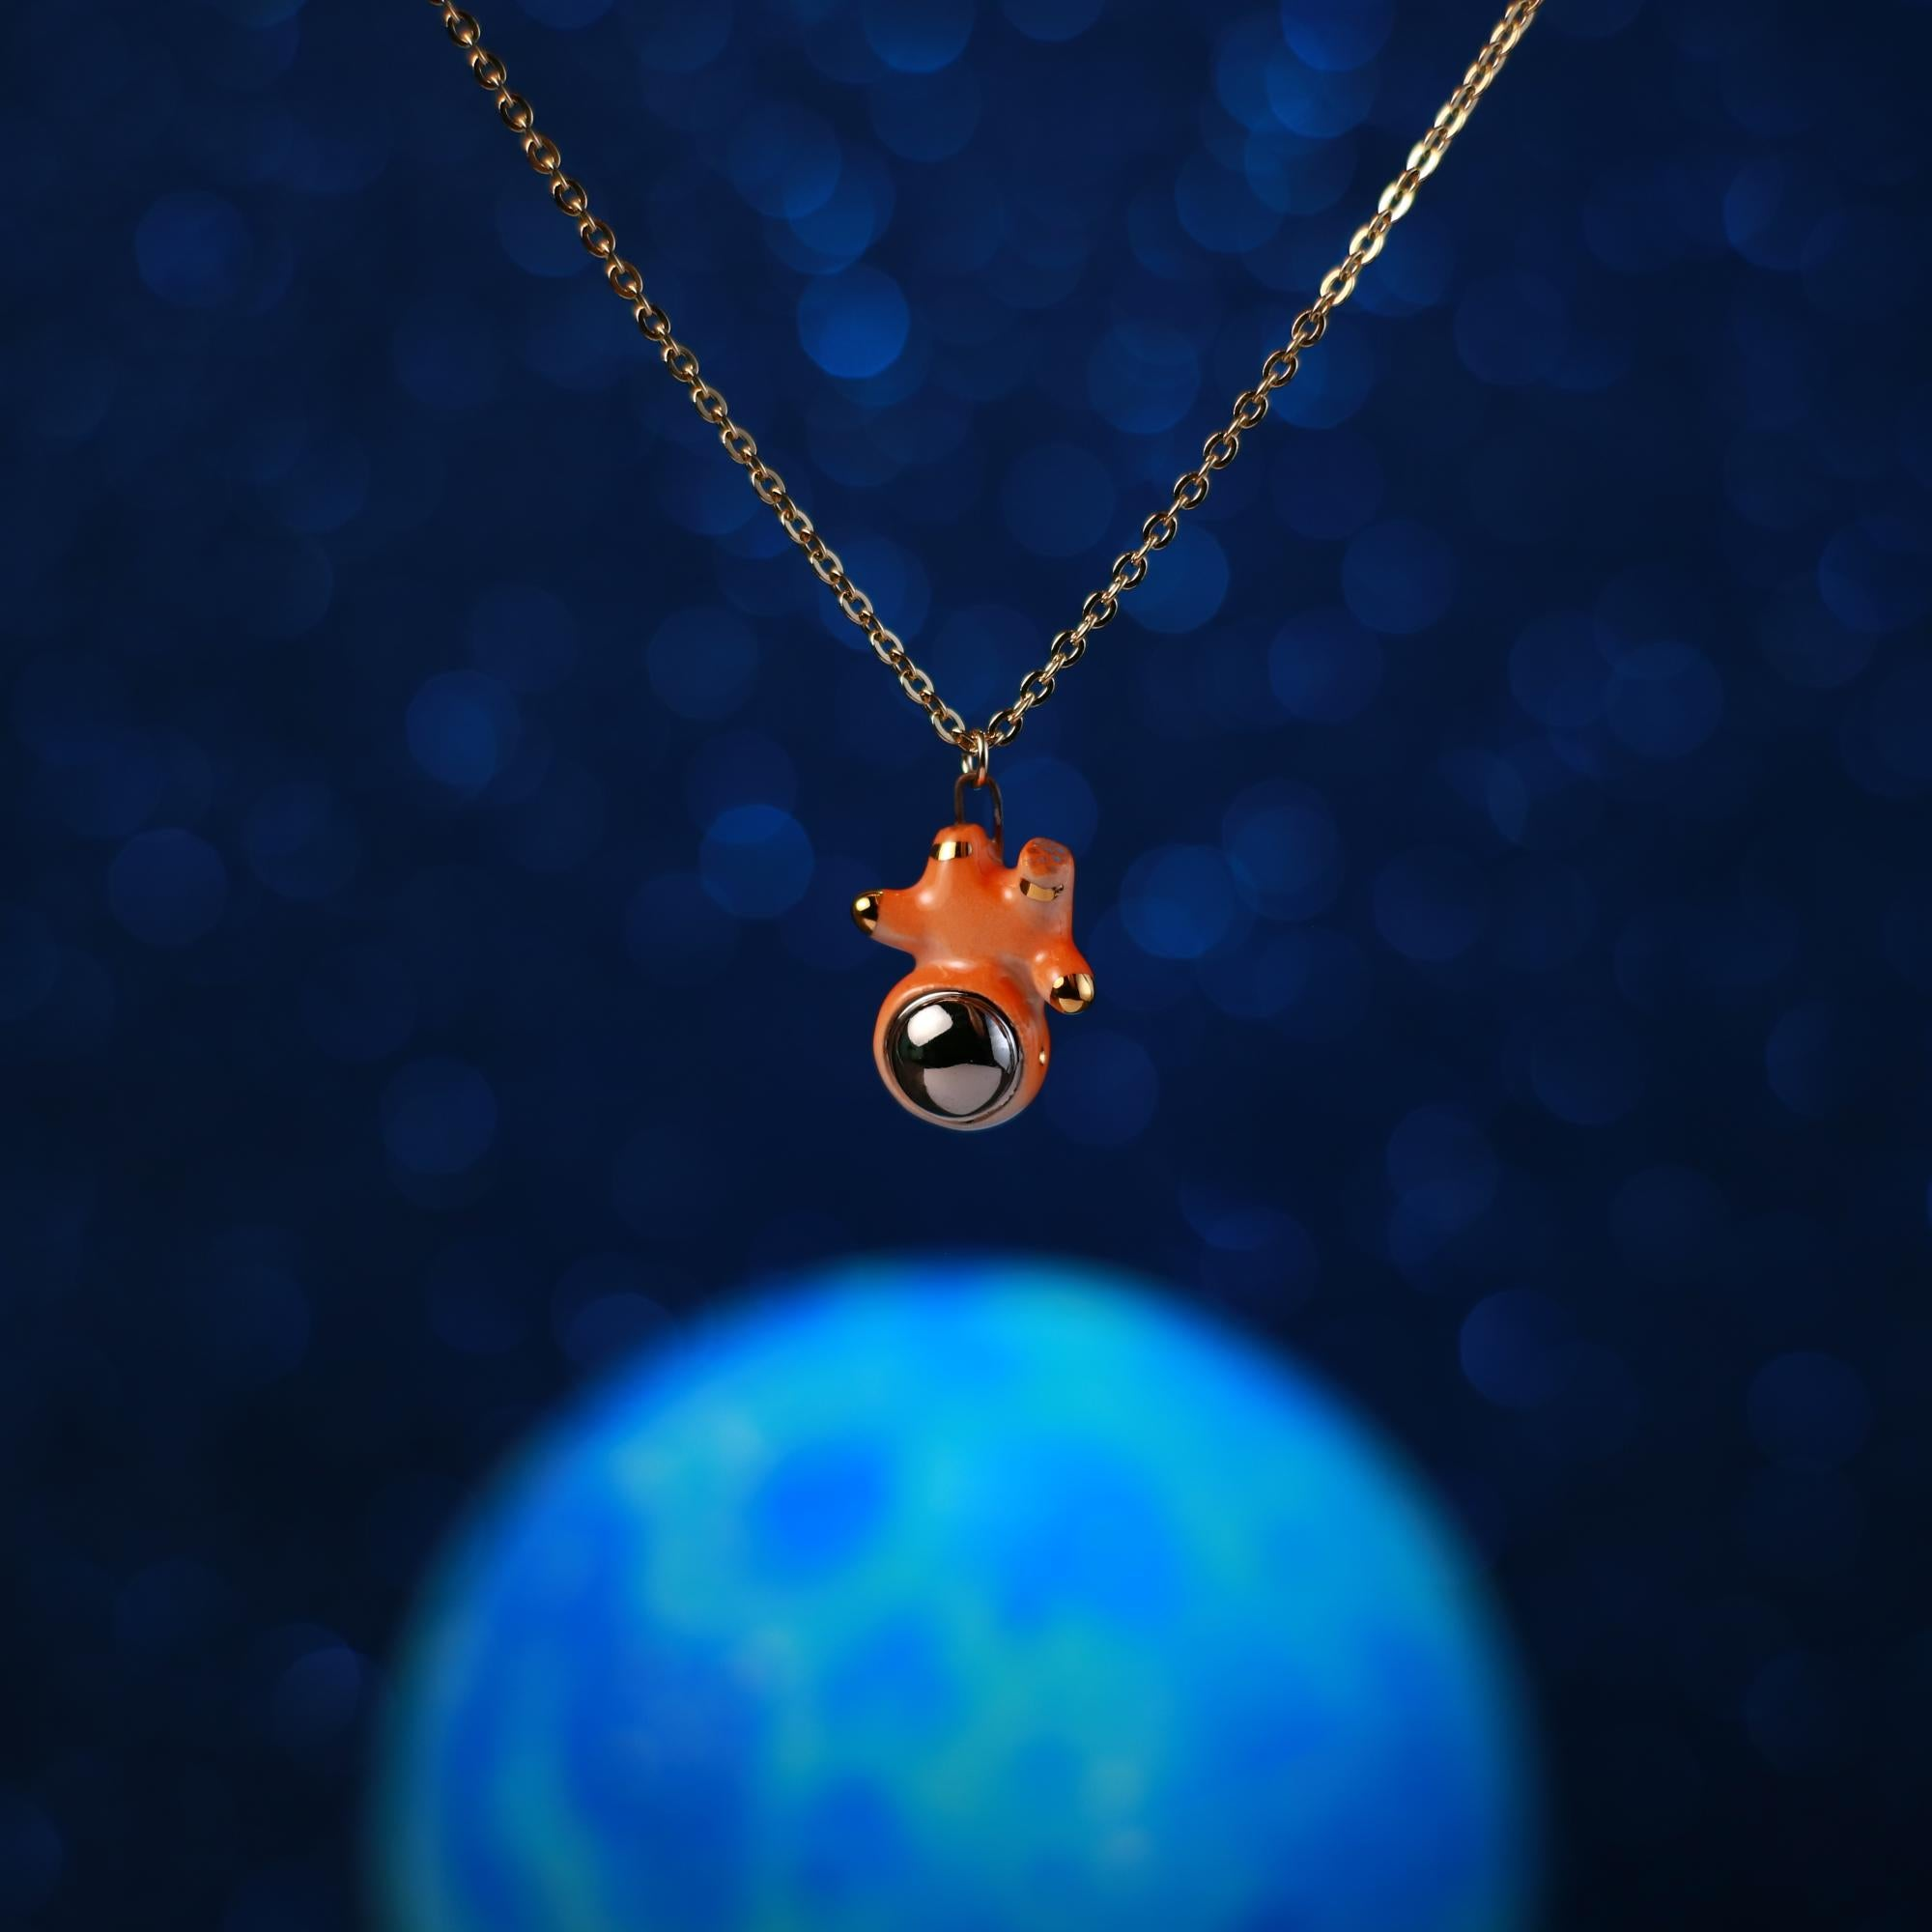 Floating Astronugget Necklace